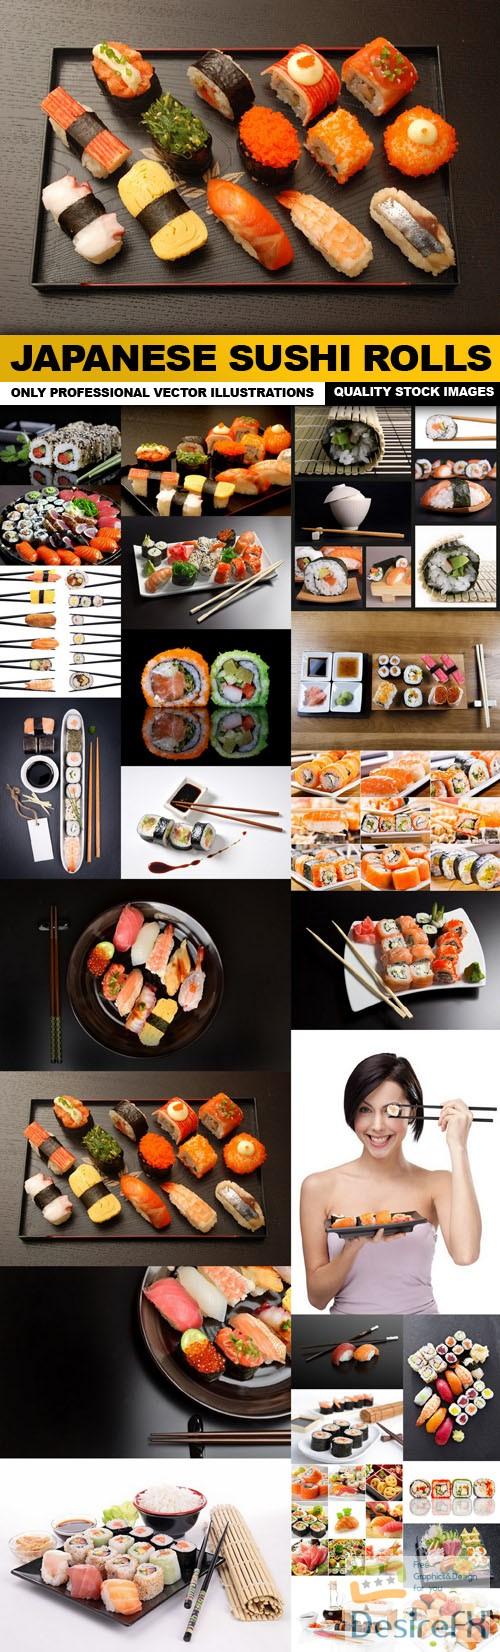 stock-images - Japanese Sushi Rolls - 25 HQ Images